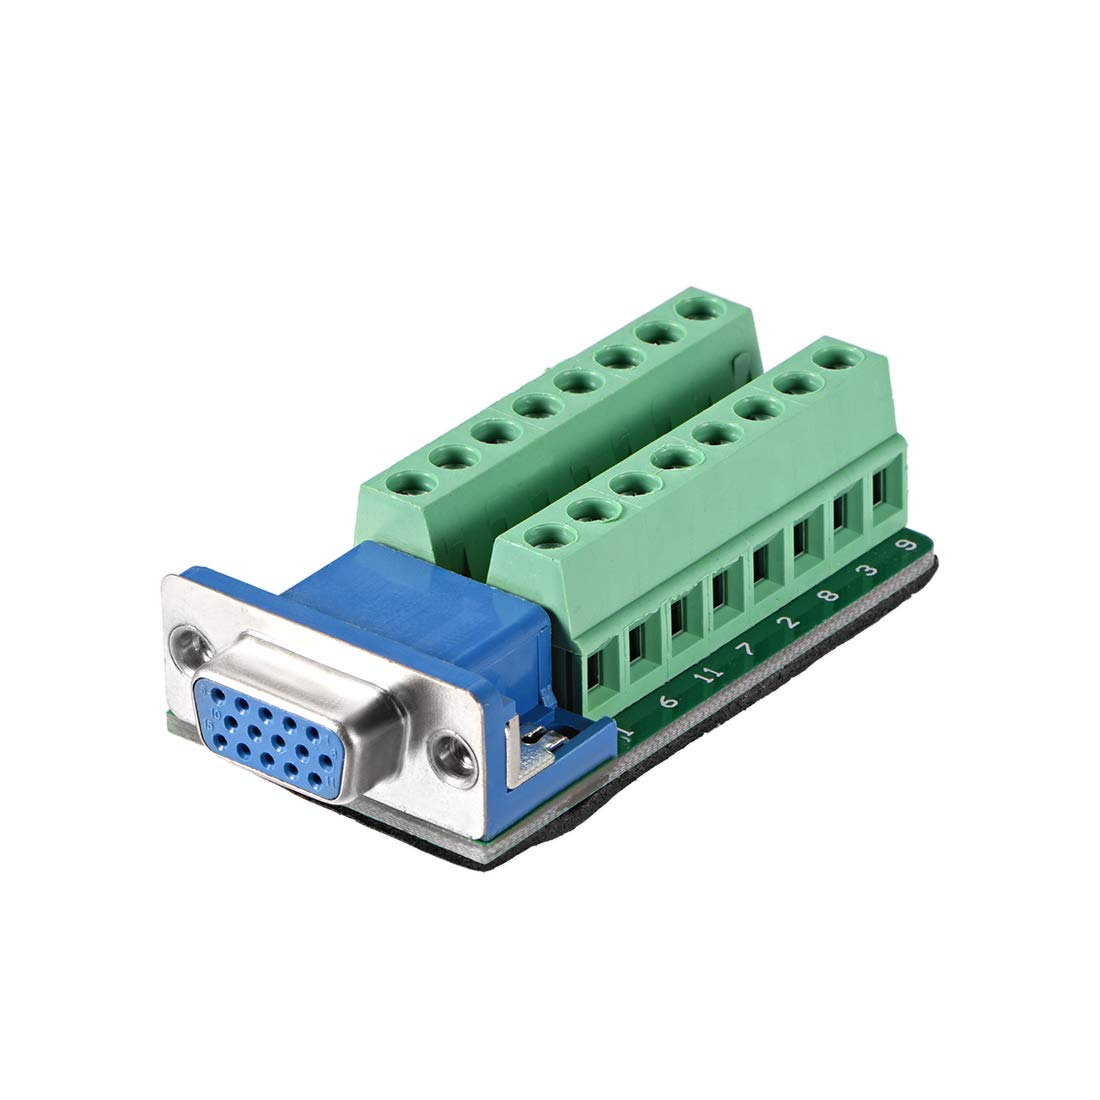 sourcing map D-sub DB9 Breakout Board Connector 9 Pin 2 Row Female Port Solderless Terminal Block Adapter